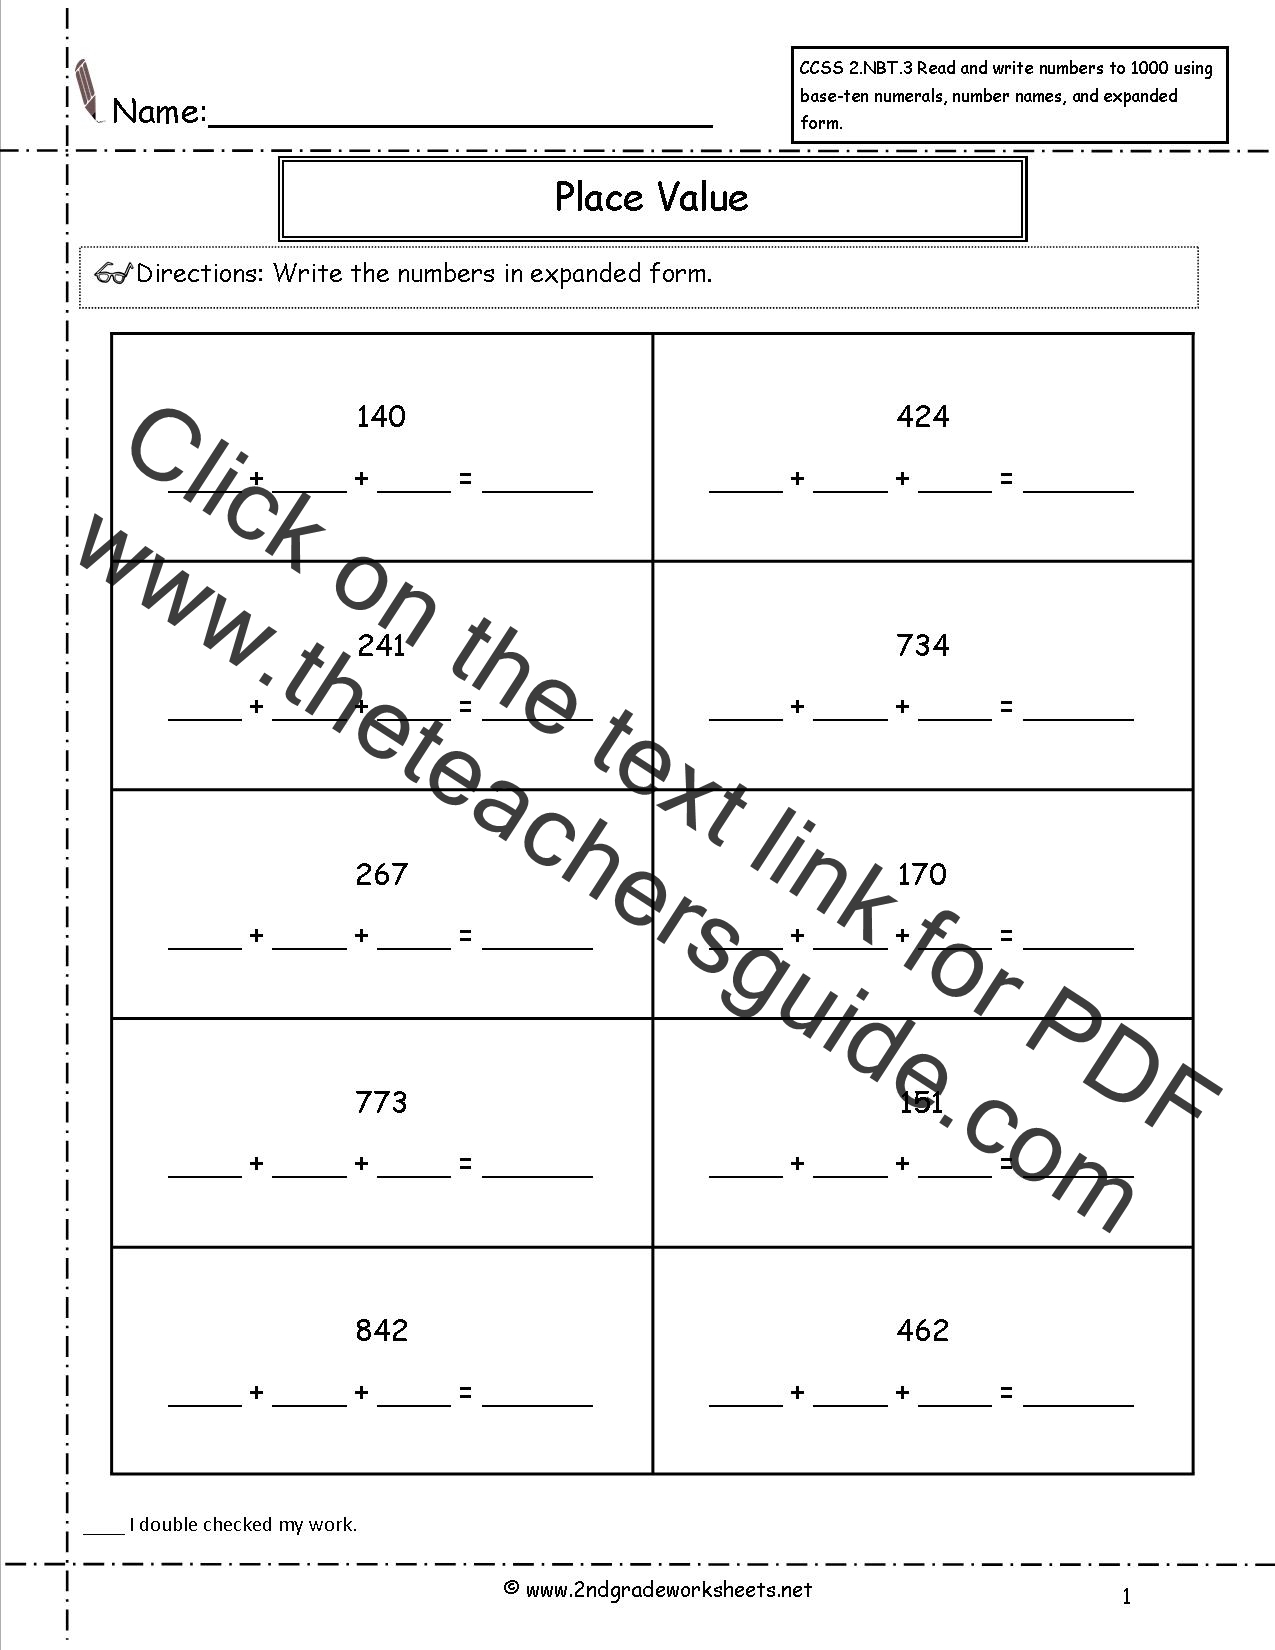 worksheet Place Value Block Worksheets ccss 2 nbt 3 worksheets place value read and write numbers expanded notation